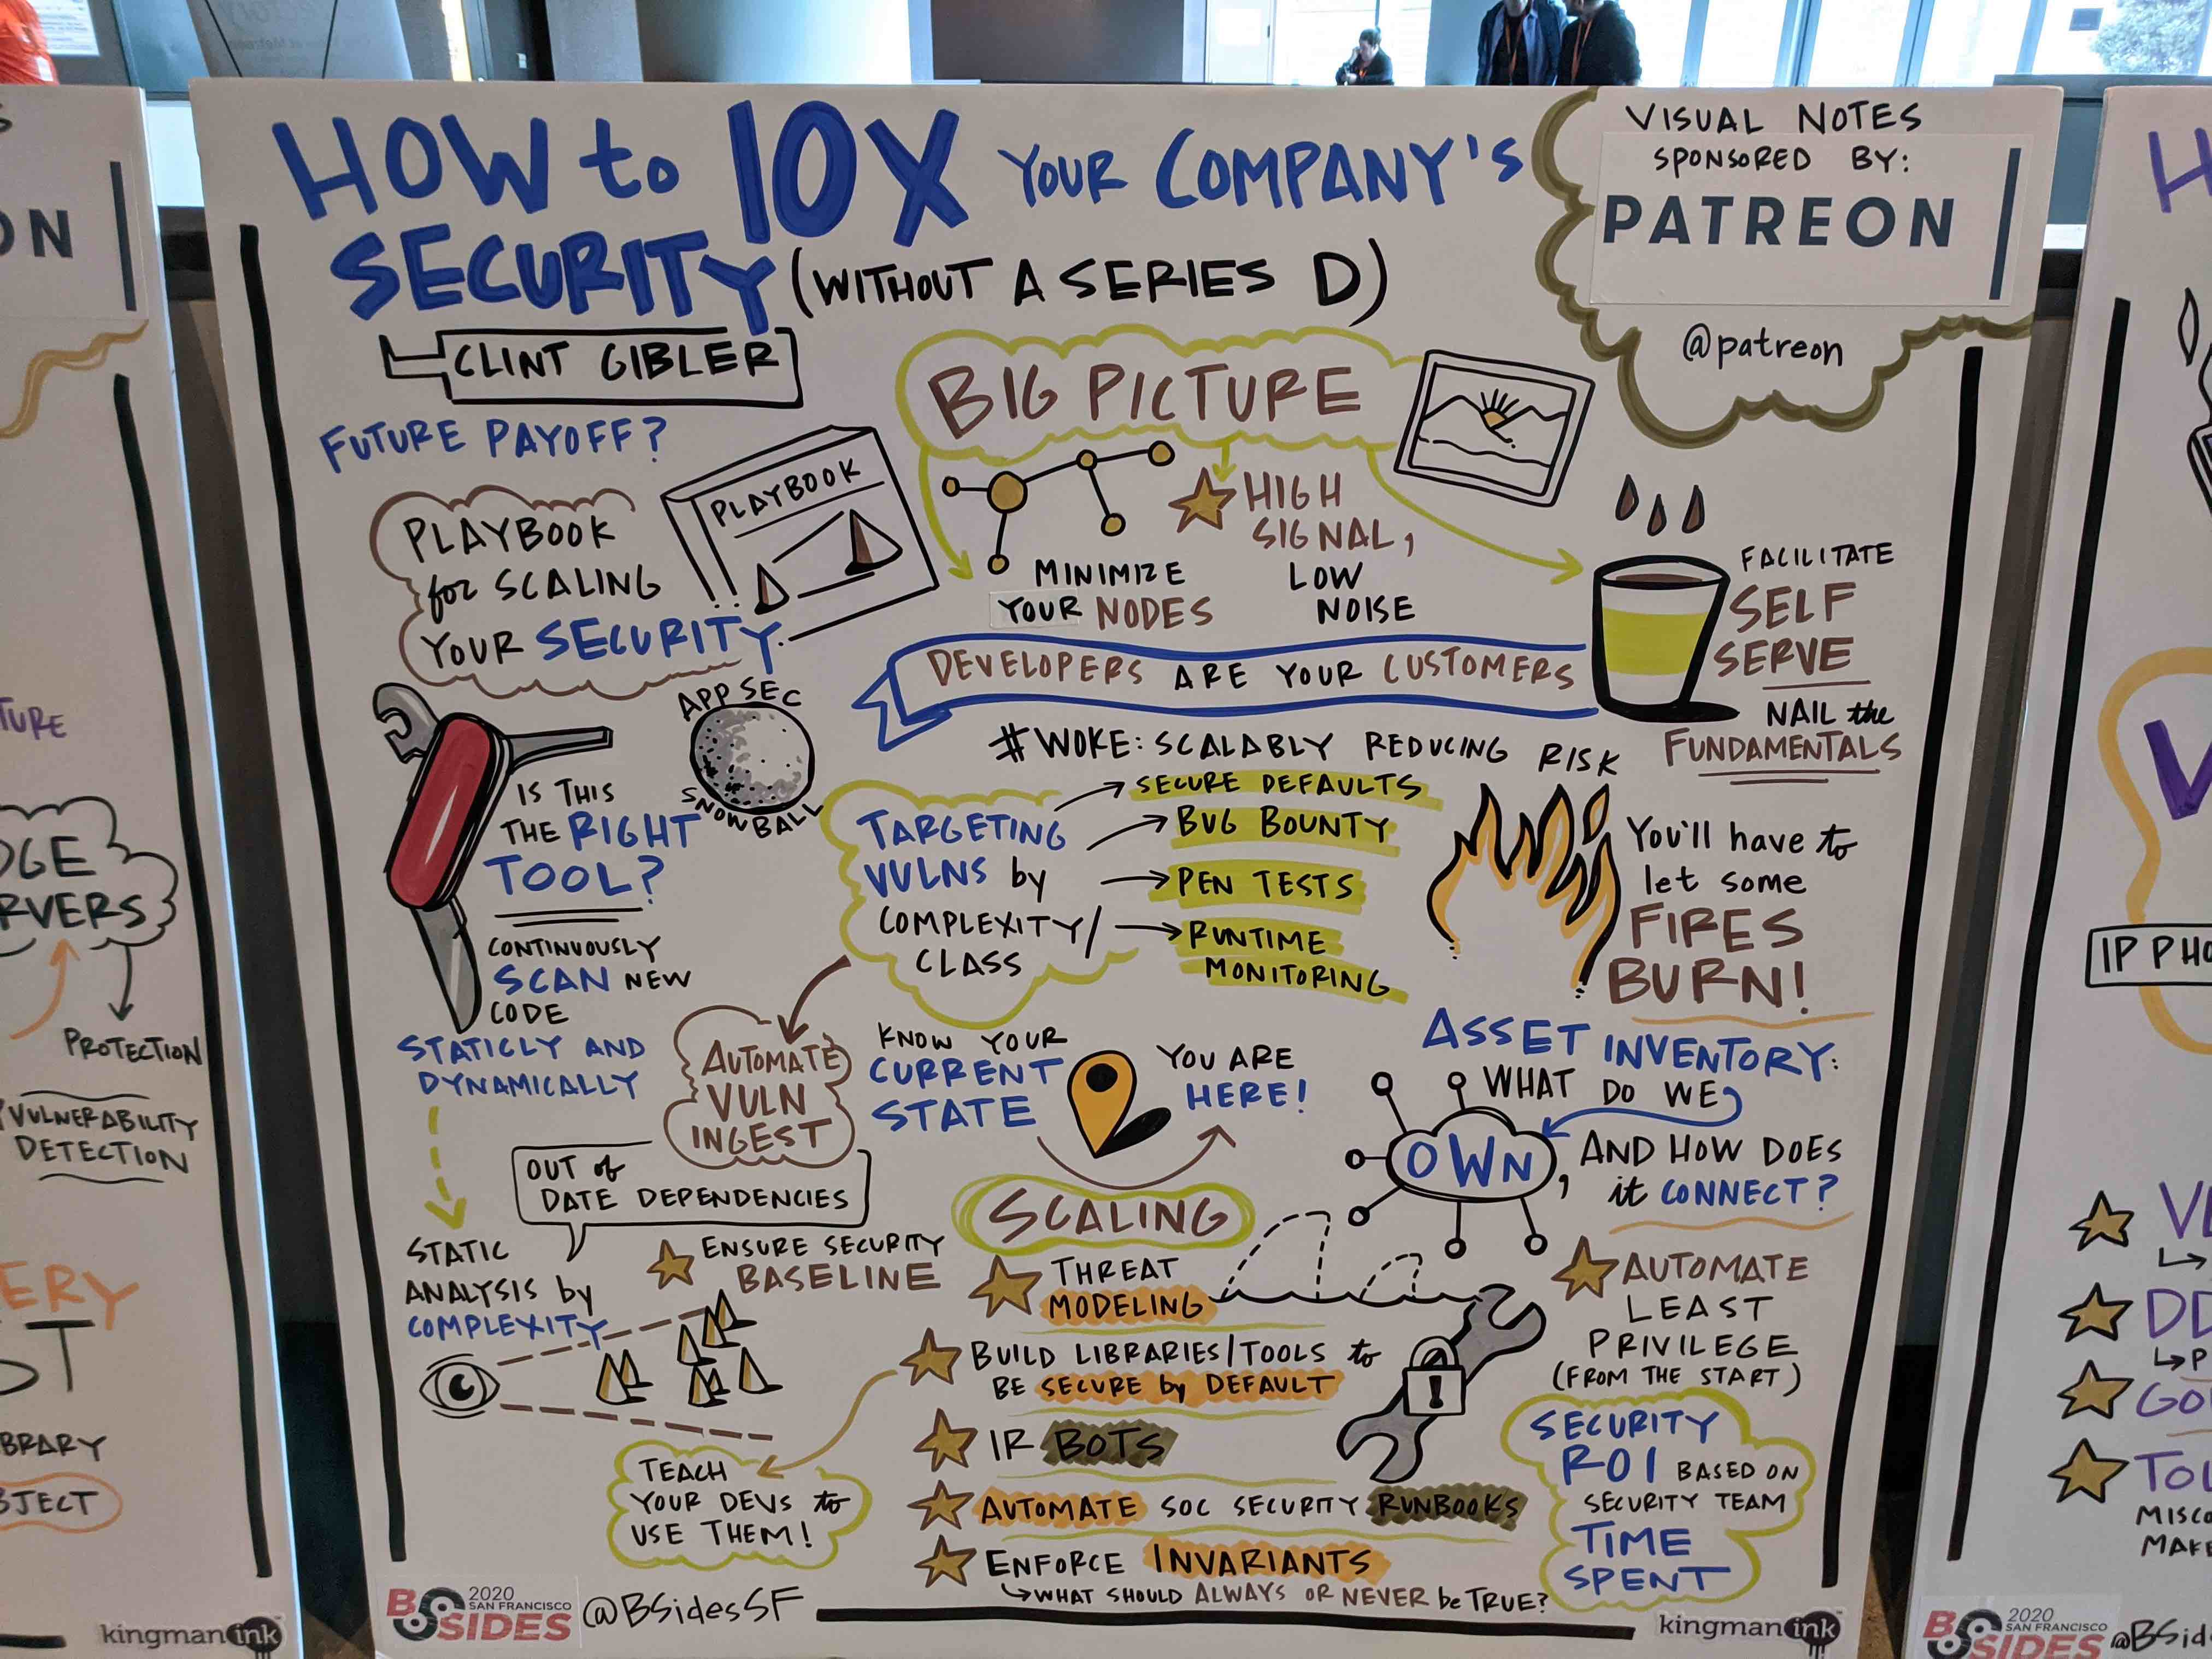 How to 10X Your Company's Security - Post